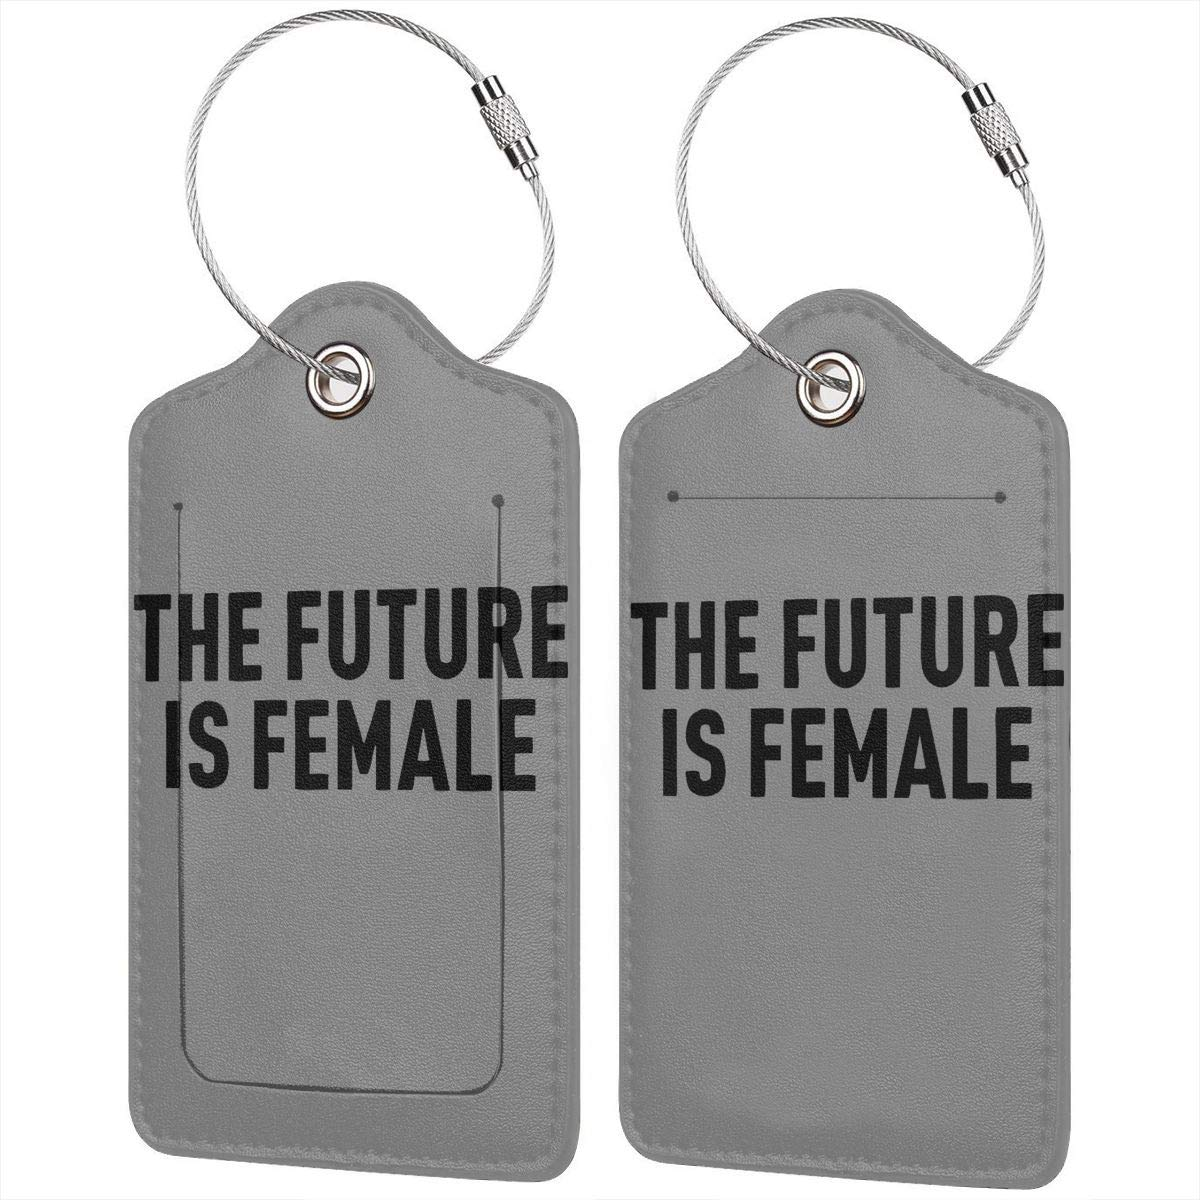 The Future Is Female Pu Leather Double Sides Print Luggage Tag Mutilple Packs 1pcs,2pcs,4pcs